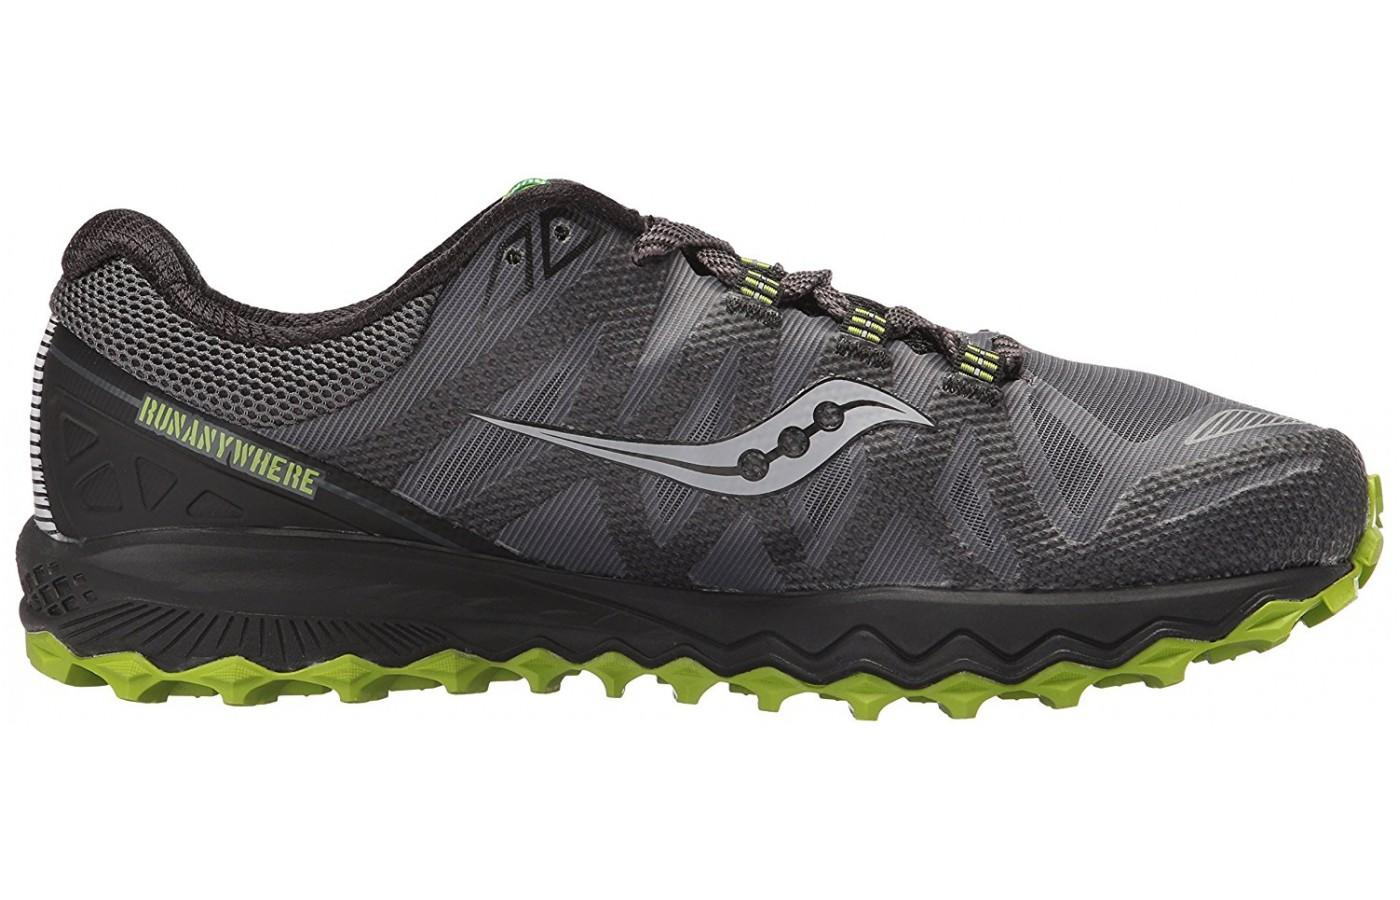 The Saucony Peregrine 7 midsole is composed of EVERUN cushioning